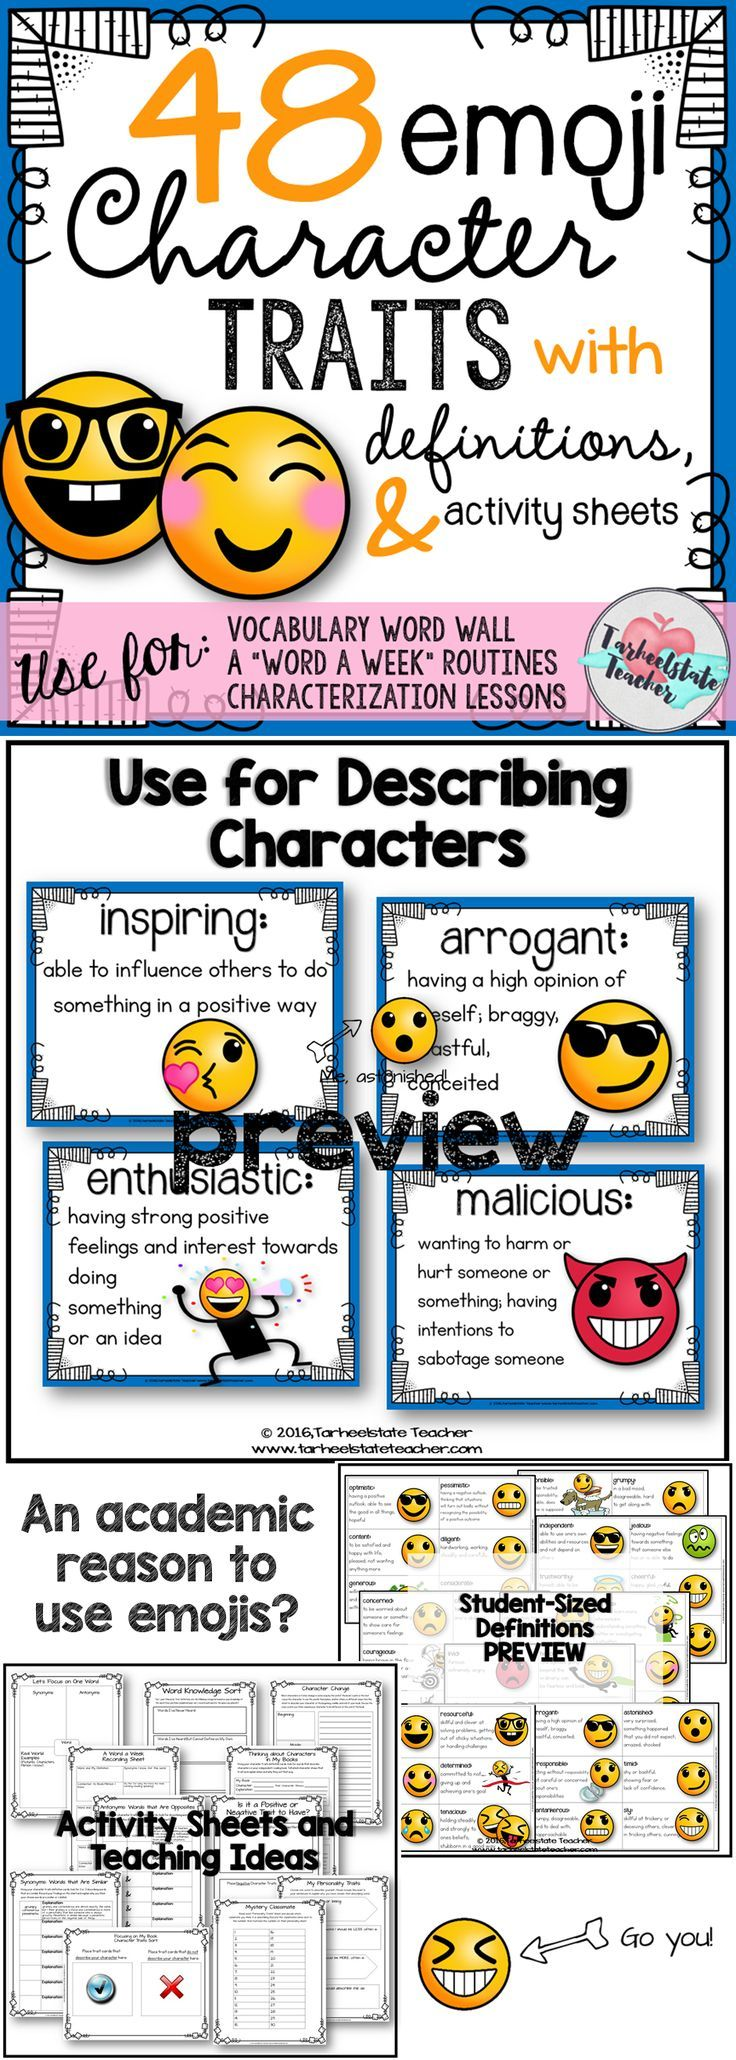 Ever asked your students to describe a character? Good, bad, nice, mean? Yes, I've had that lesson fail and I figured out what to do about it. Provide your students with a set of EMOJI STYLE character traits and definitions that will have them increasing the level of their vocabulary in no time! 48 character traits, activity sheets, lesson ideas, great for poster, bulletin board, word of week, and more!